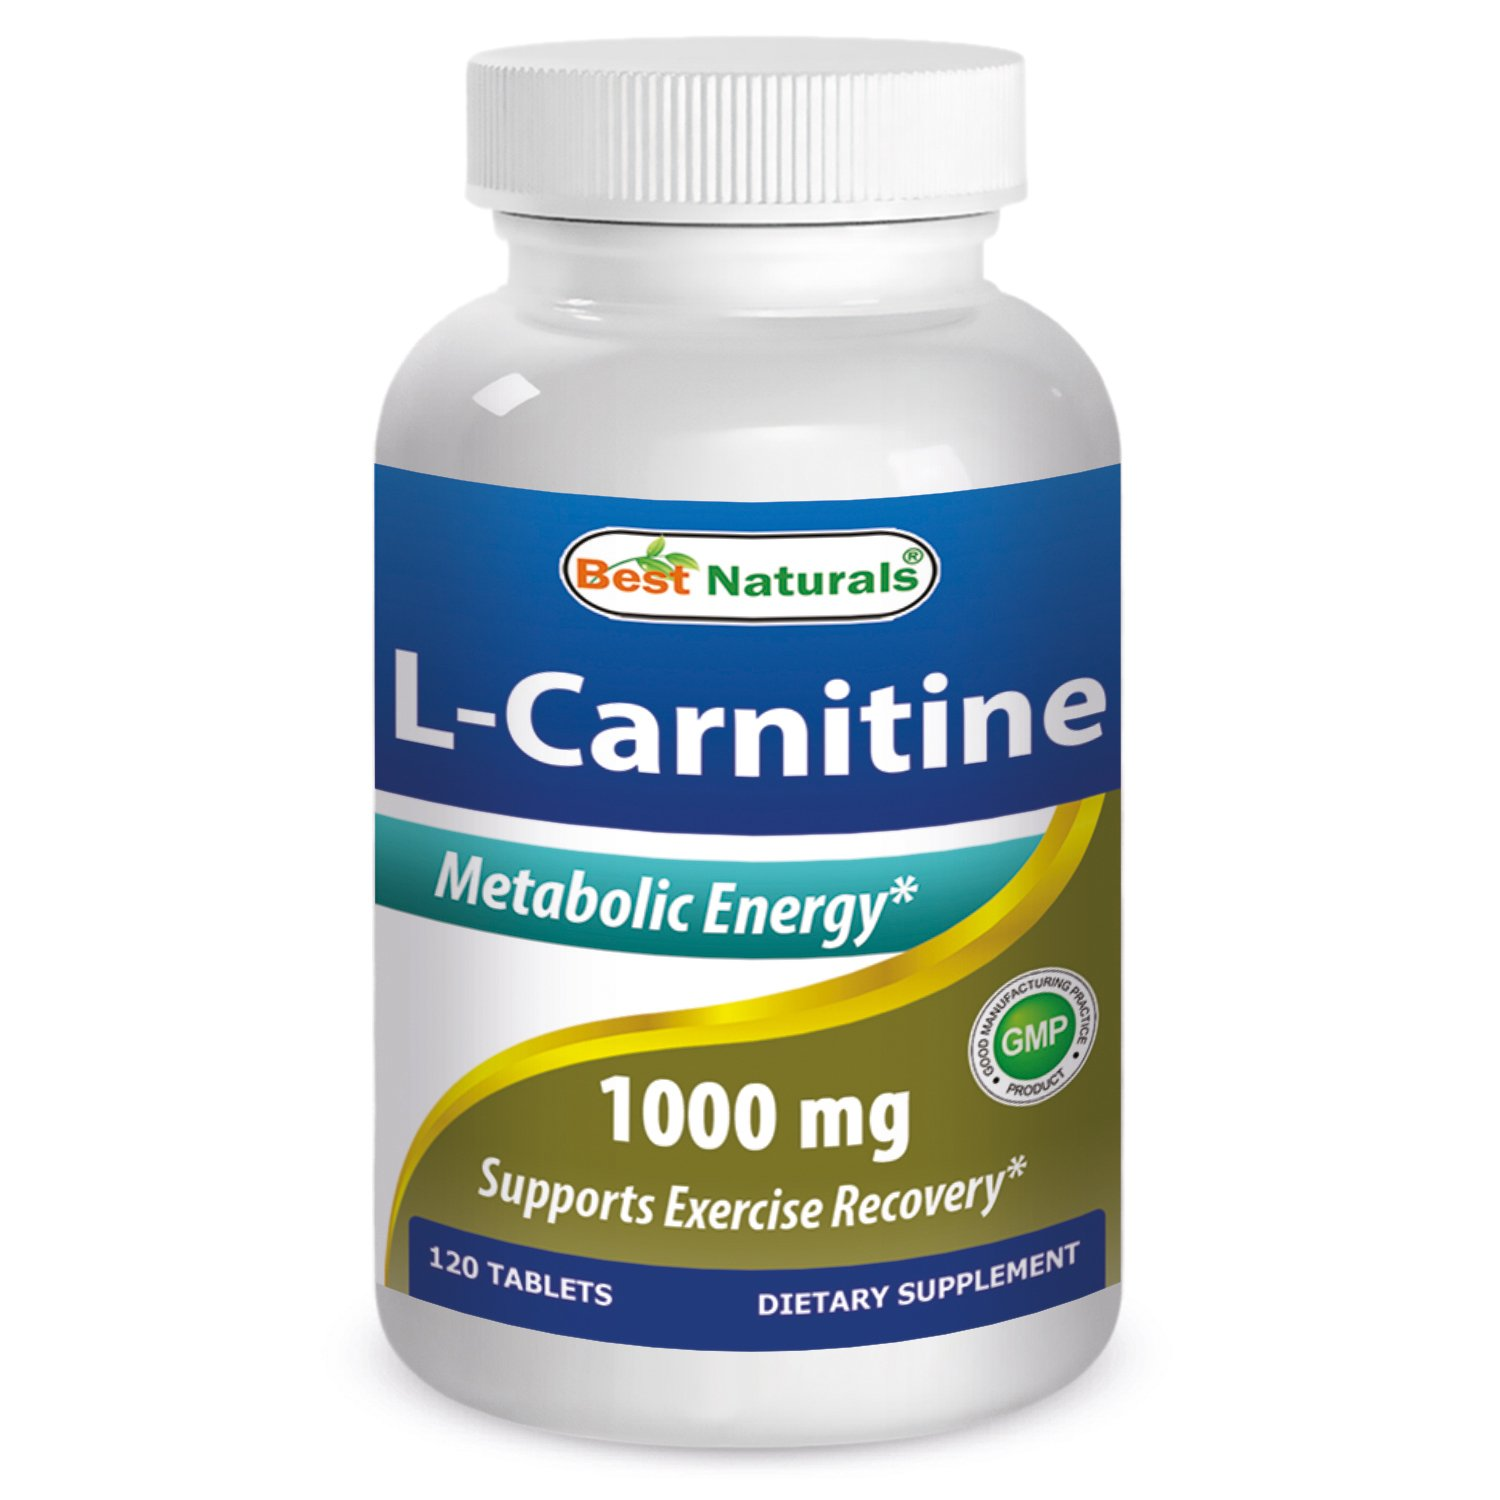 Best Naturals L-Carnitine 1000 mg 60 Tablets by Best Naturals